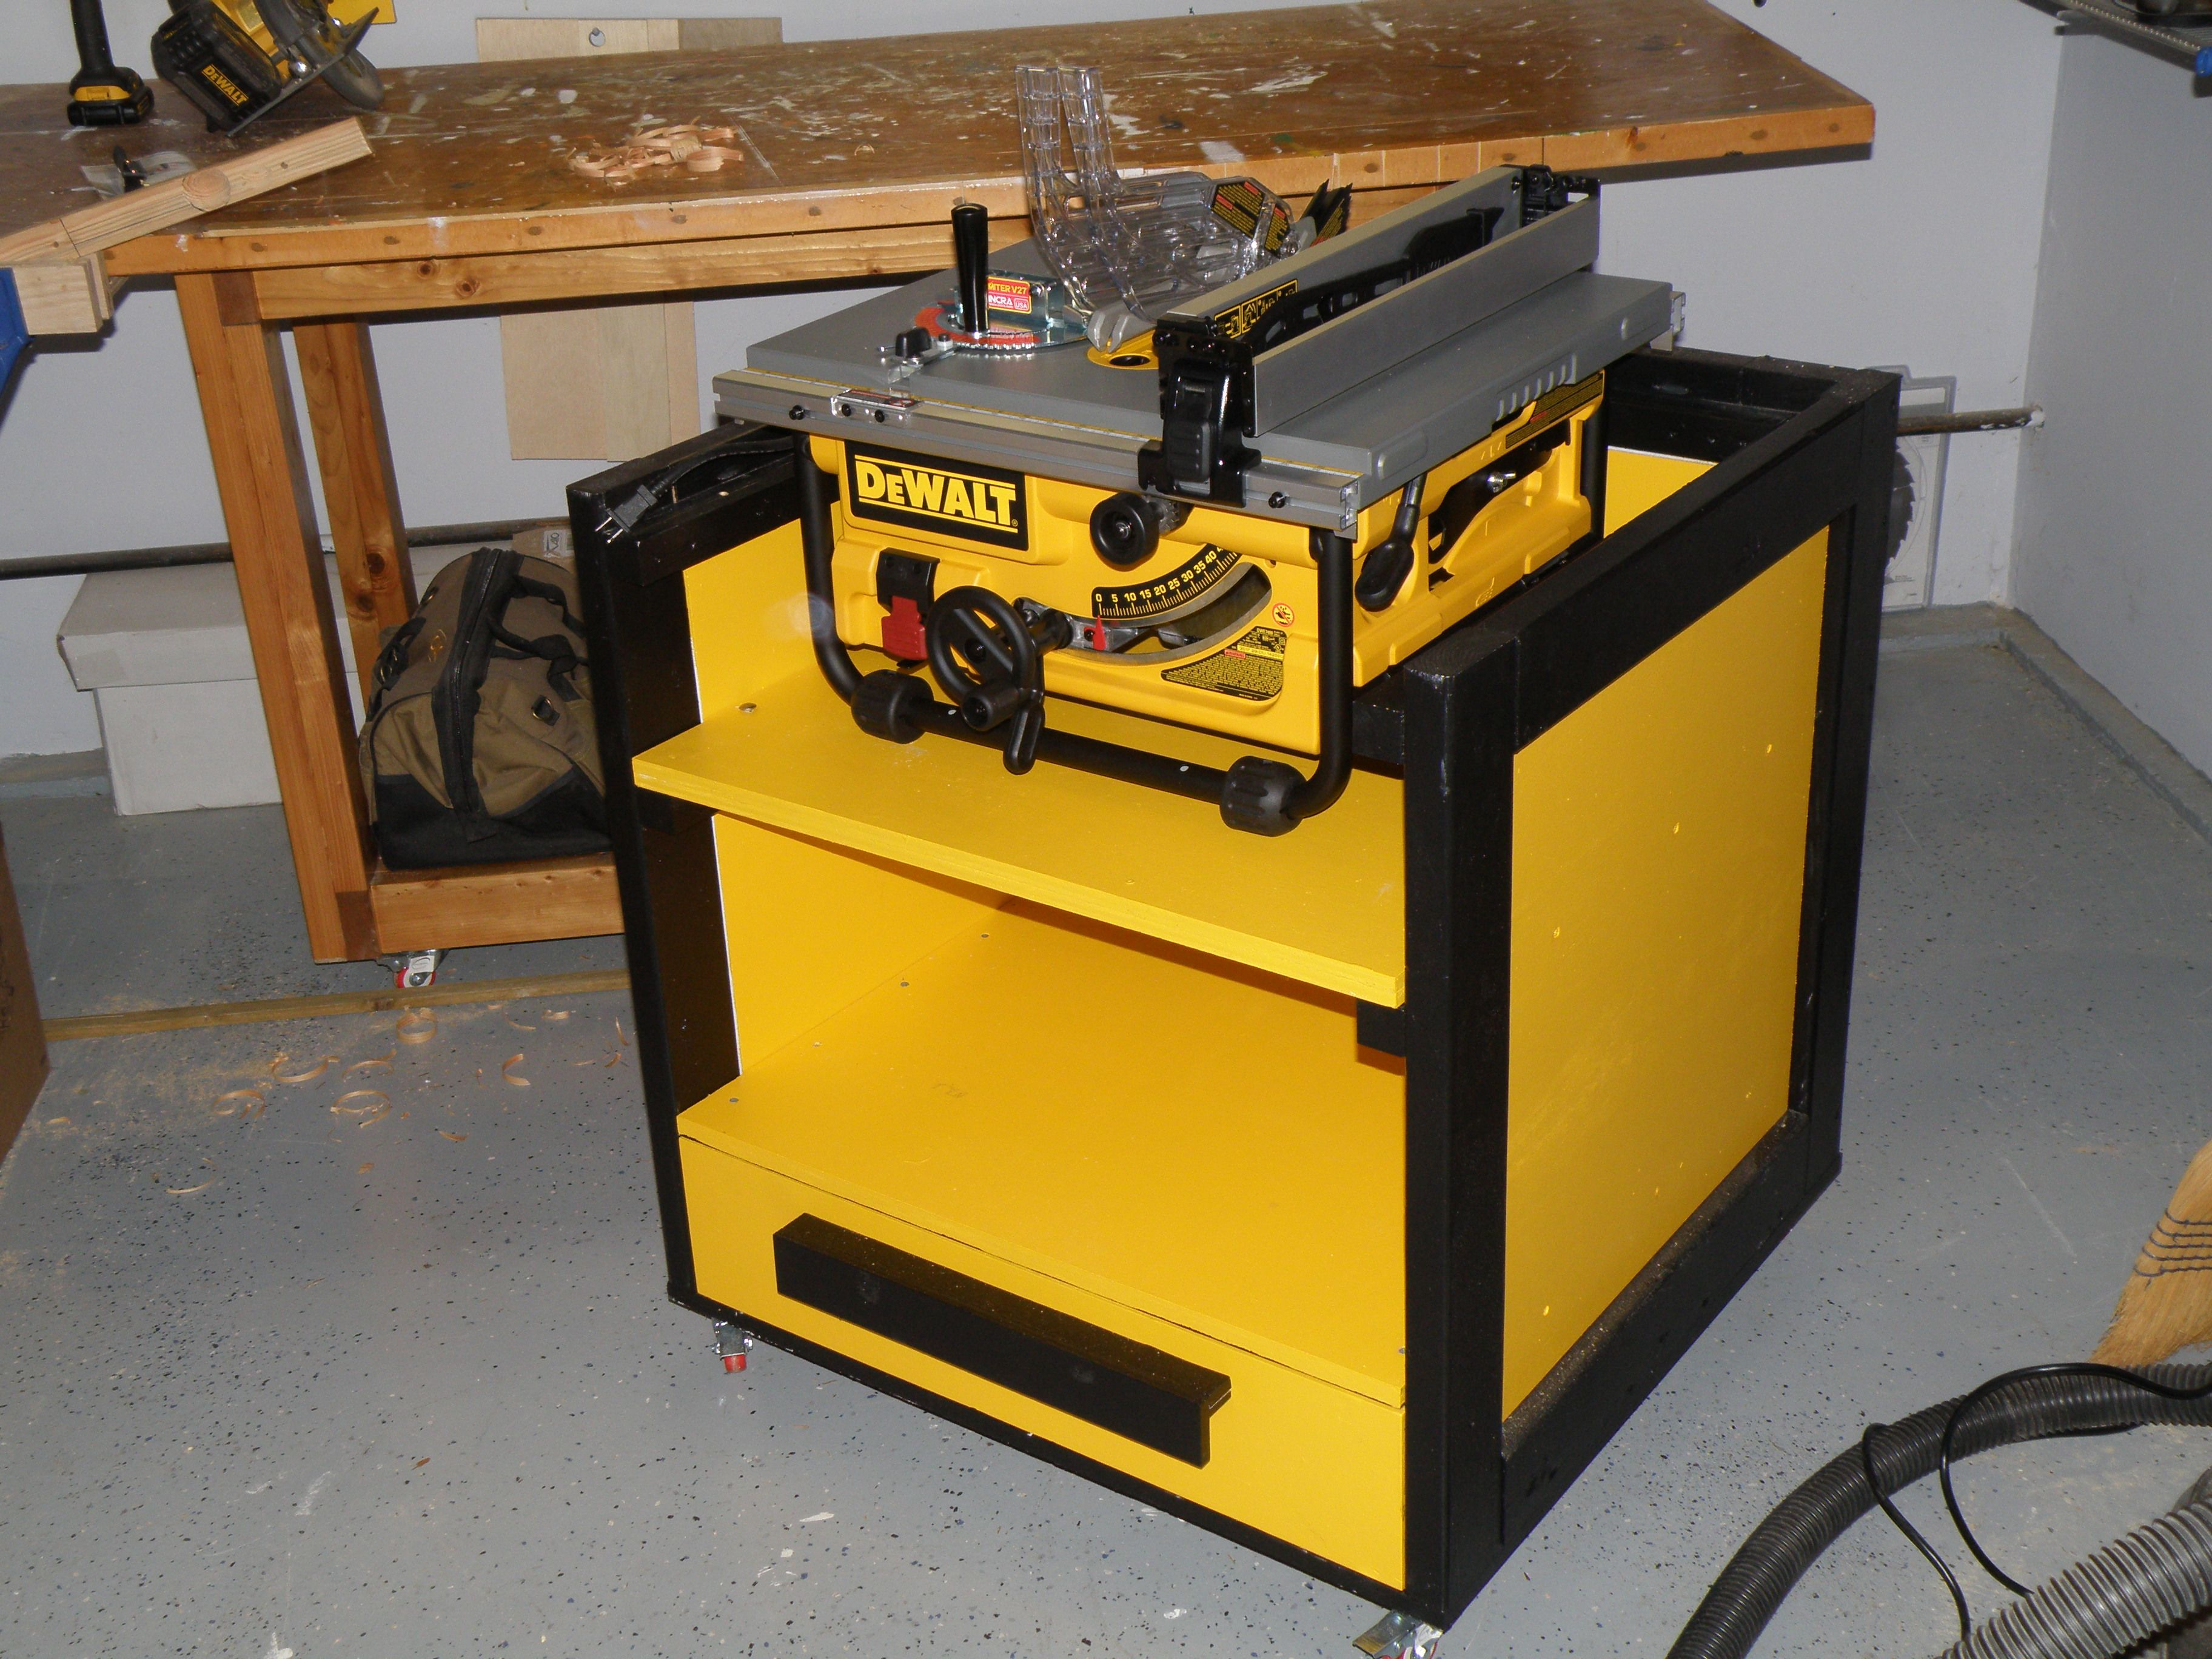 Mobile Table Saw Stand In The Storage Position Sits On Top Of Drawer Middle Shelf Repositions To Making It A